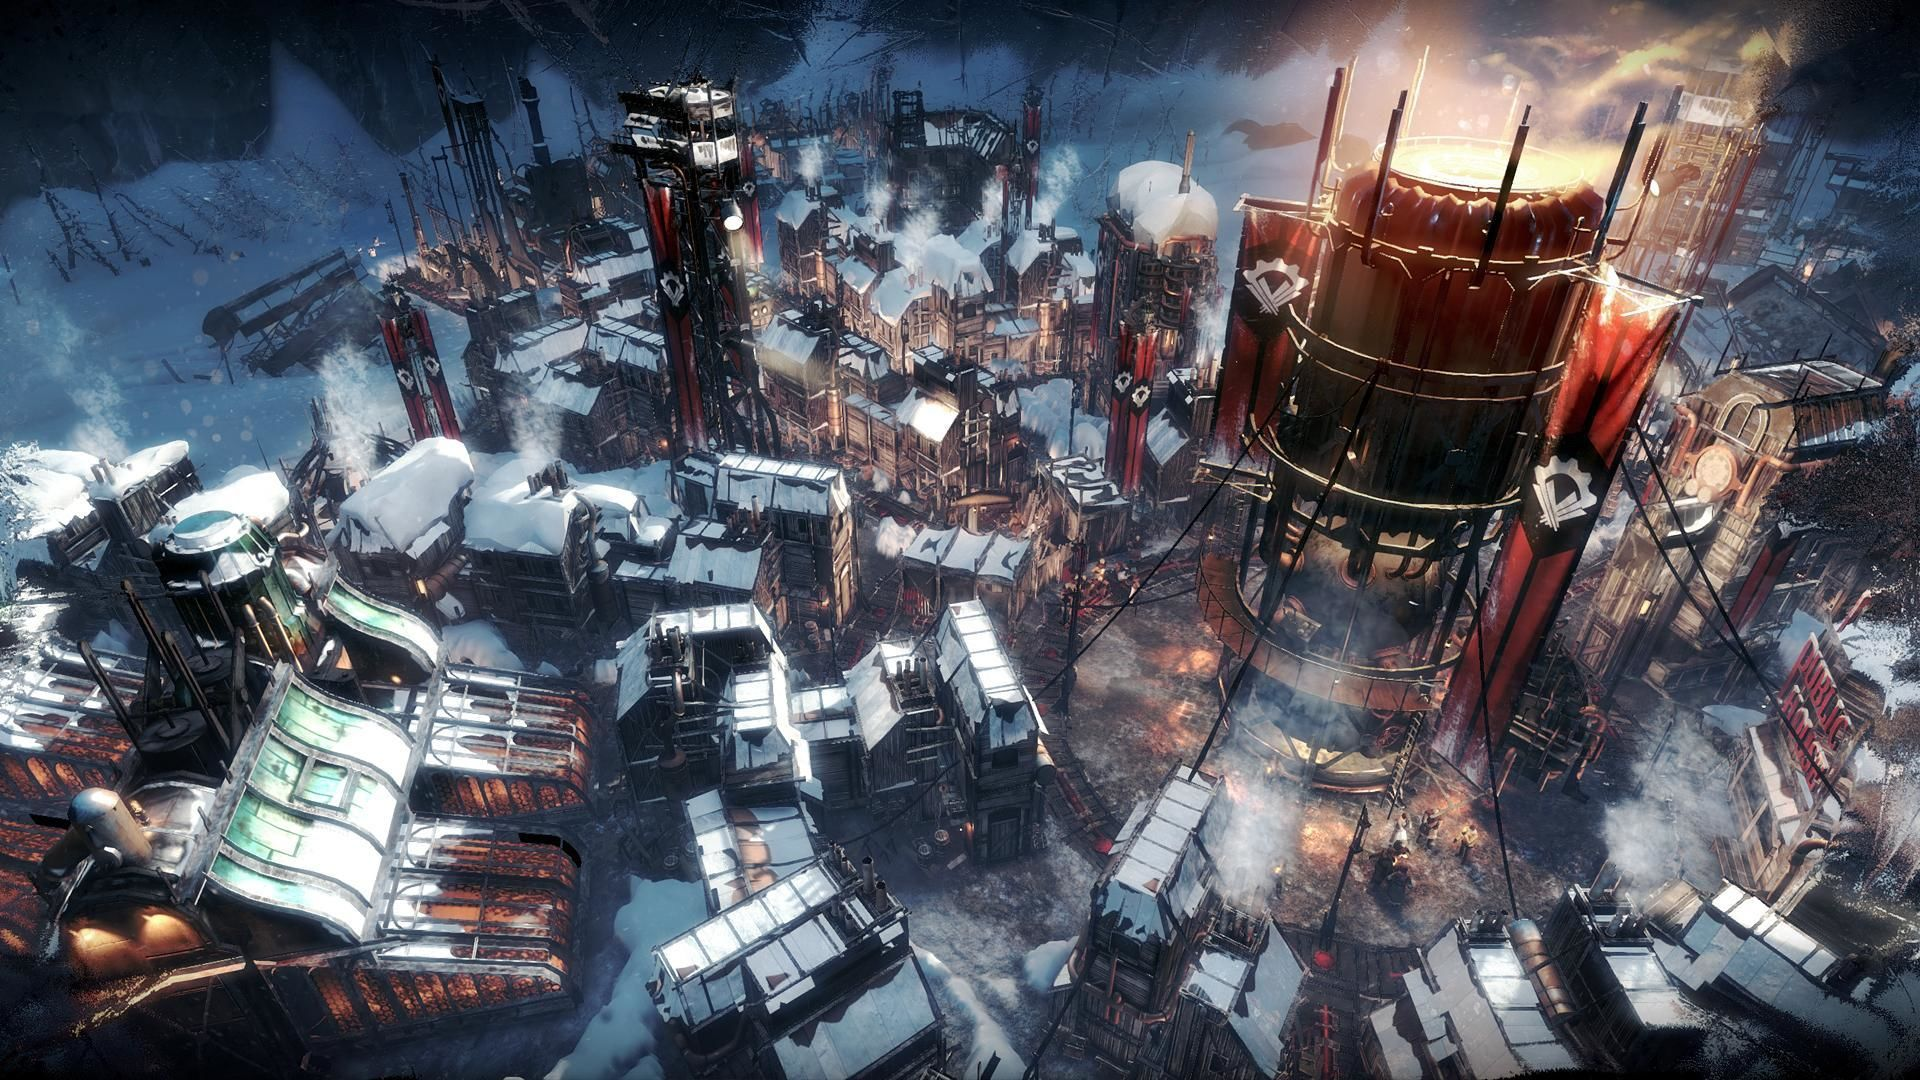 The popular strategy game Frostpunk is coming to mobile